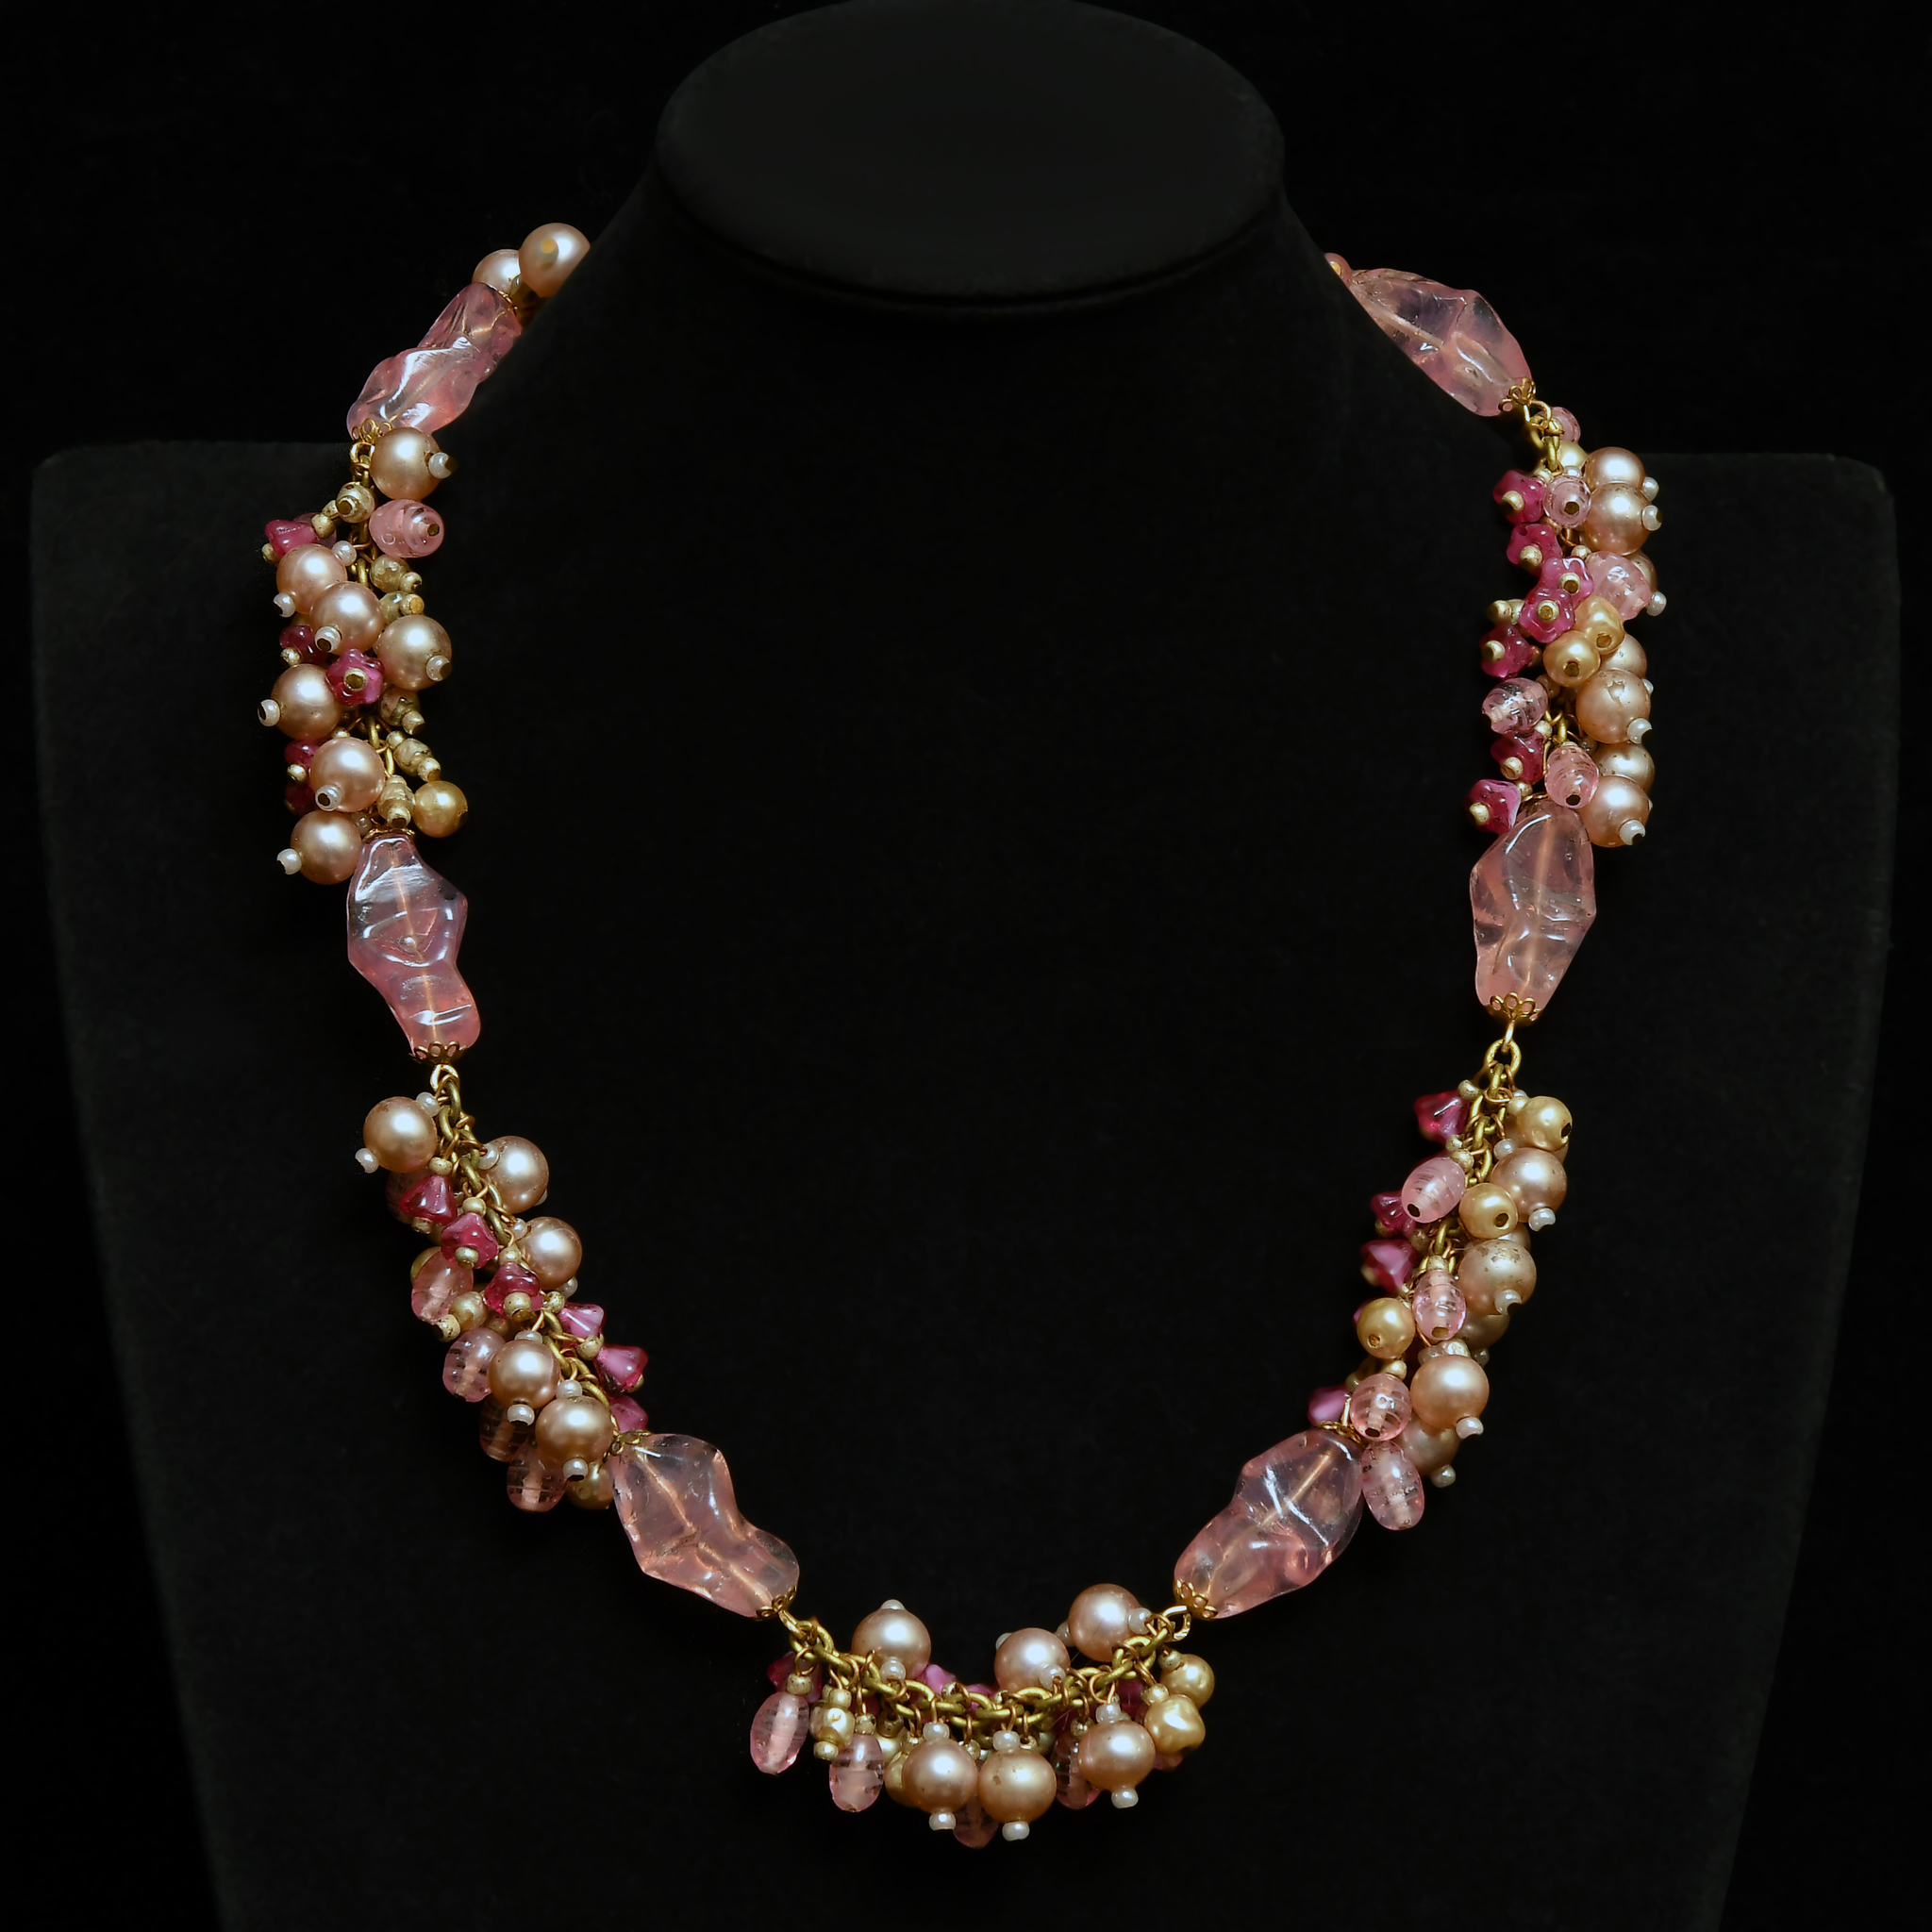 Exquisite jewelry set by Miriam Haskell